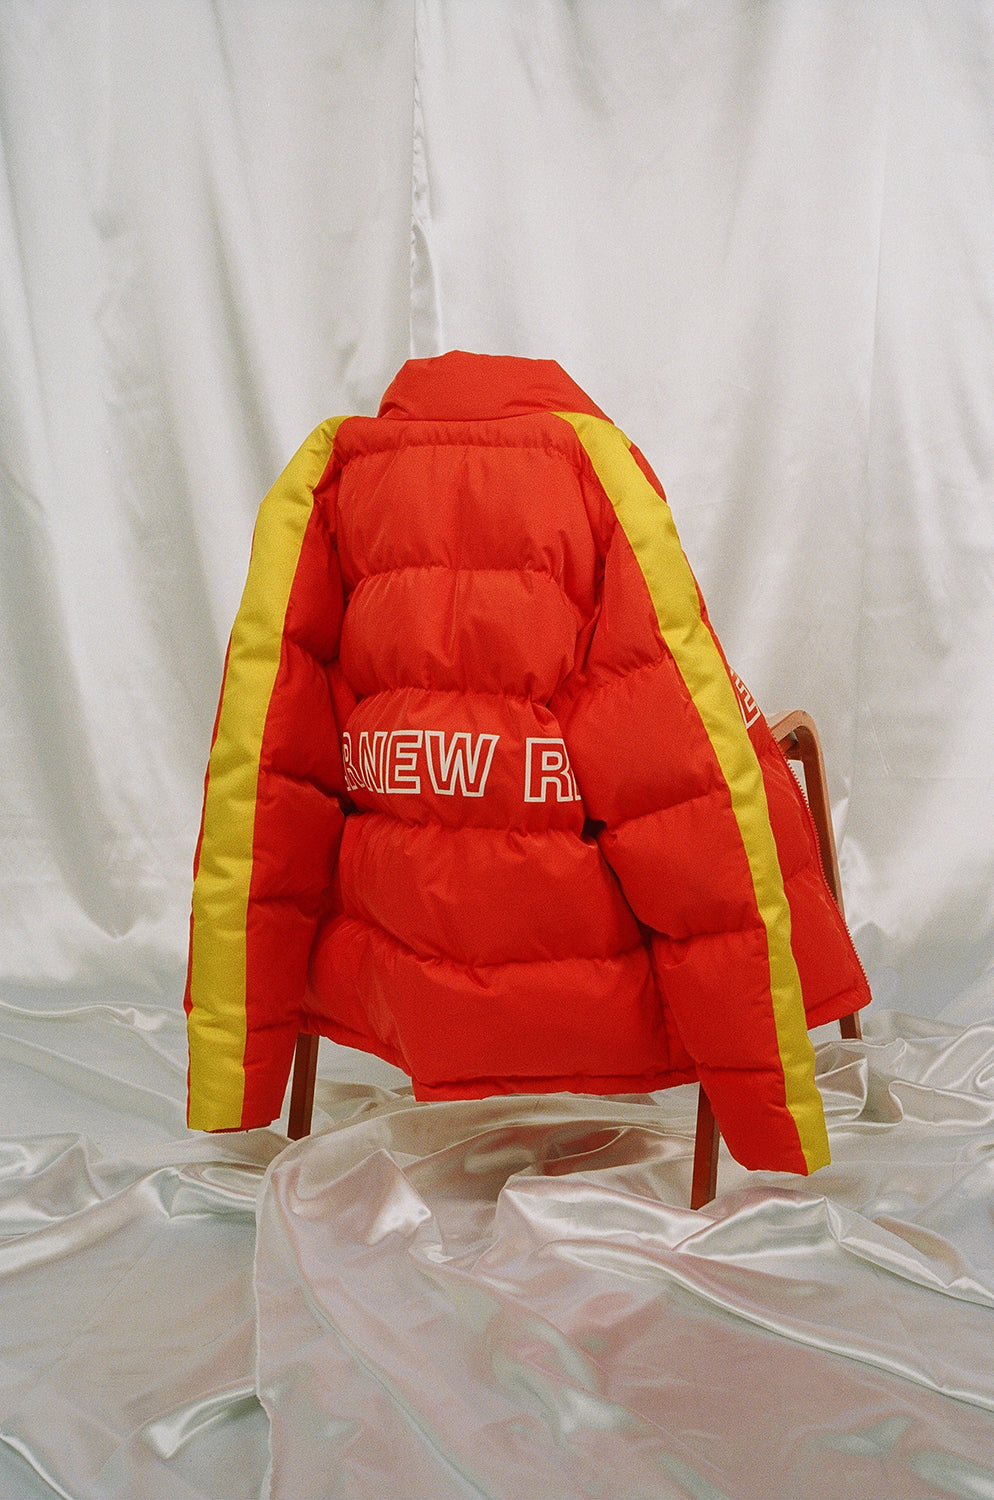 Atelier New Regime - Shop Outerwear